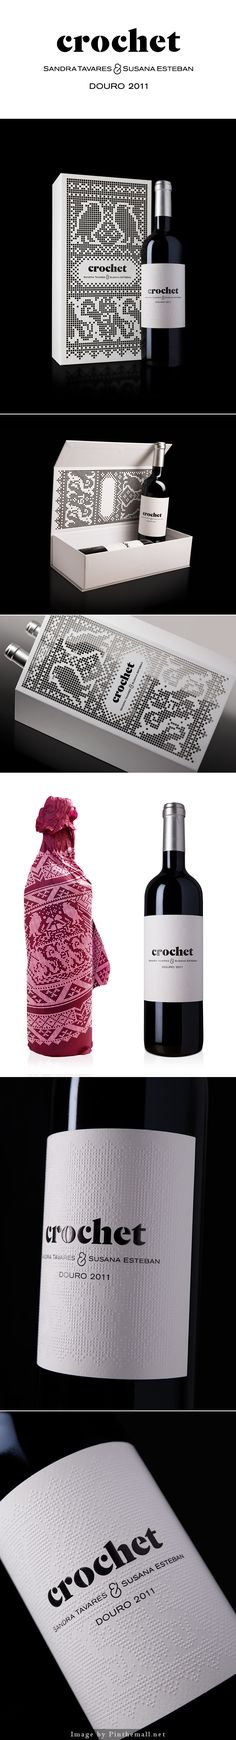 Love this crochet inspired #wine #packaging for #winewednesday curated by Packaging Diva PD - created via https://www.behance.net/gallery/12358909/Crochet